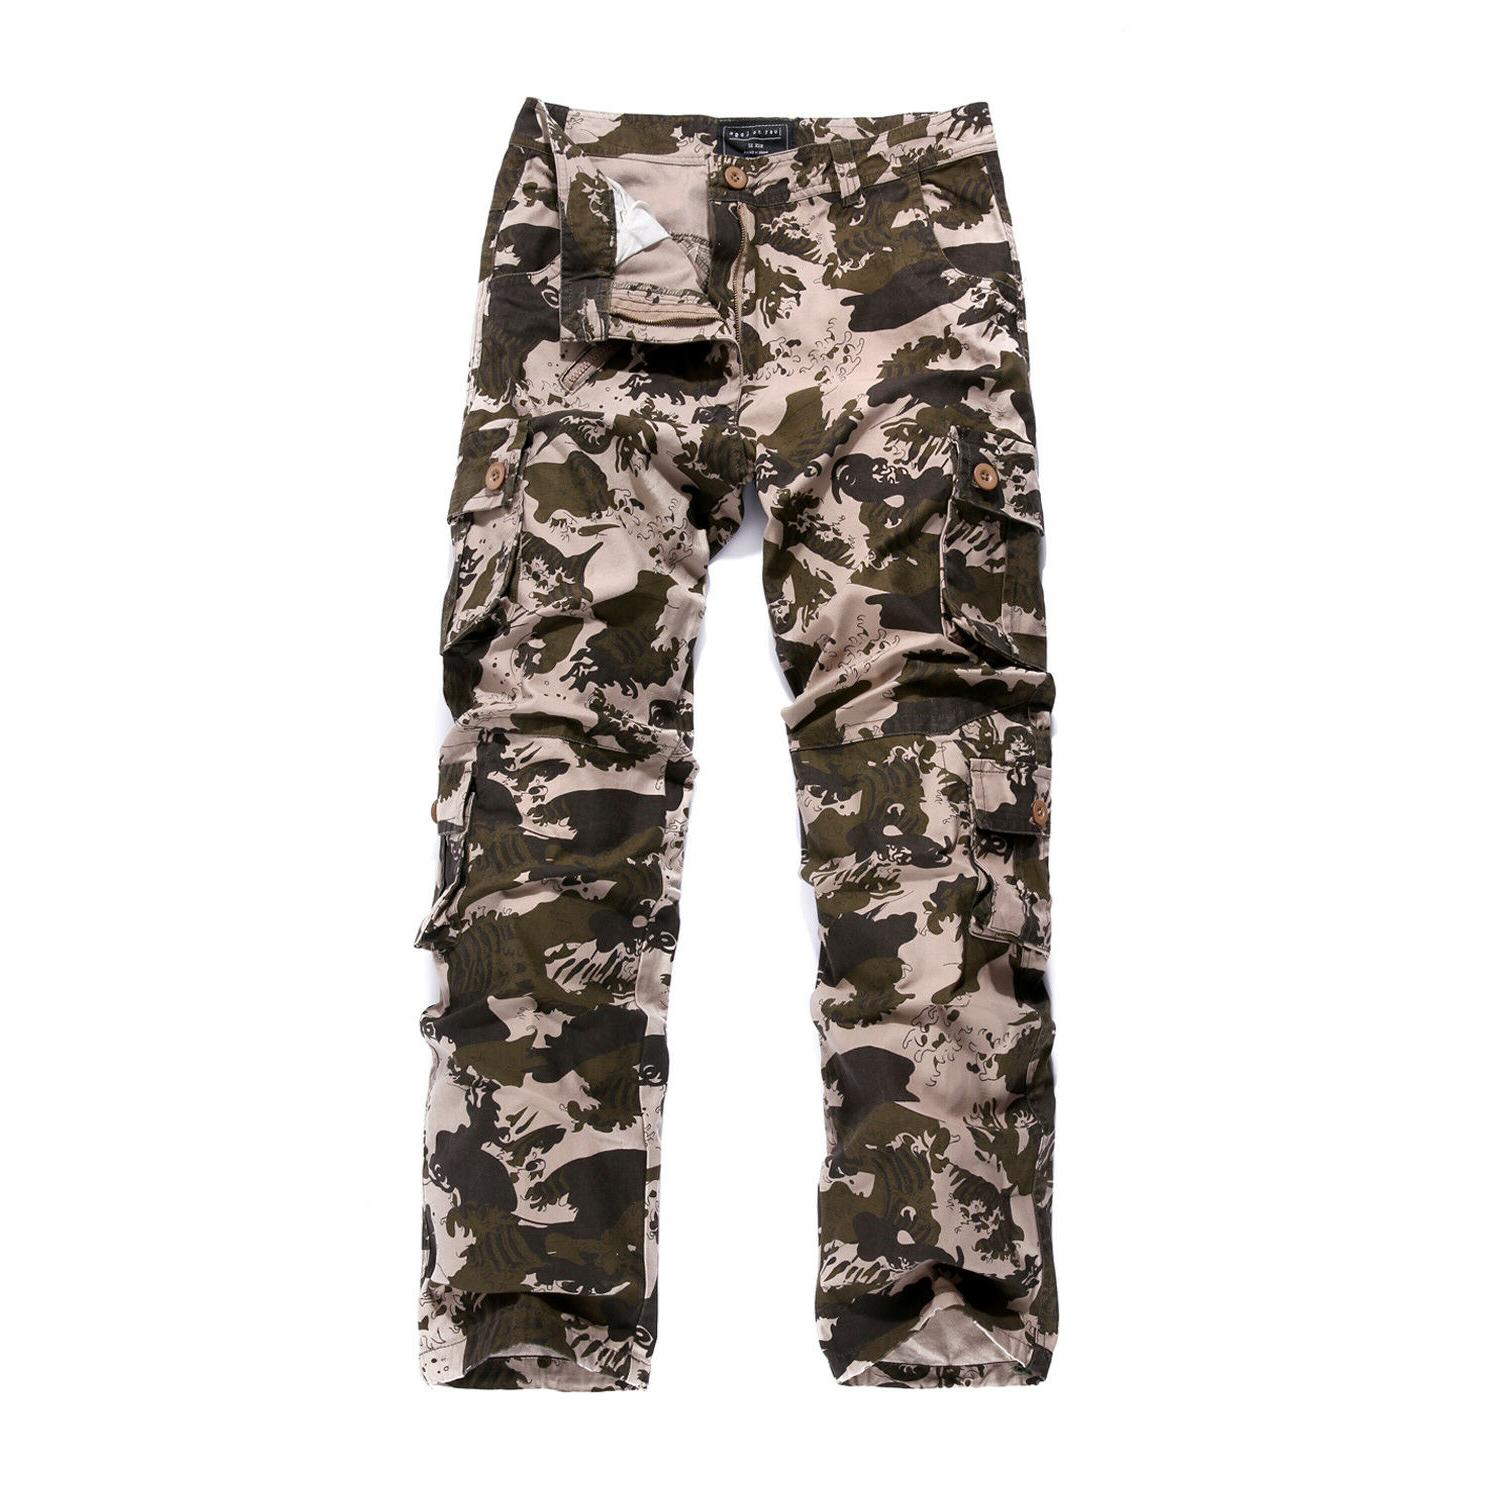 Military Men's Cotton Pants Combat Camouflage Army Style